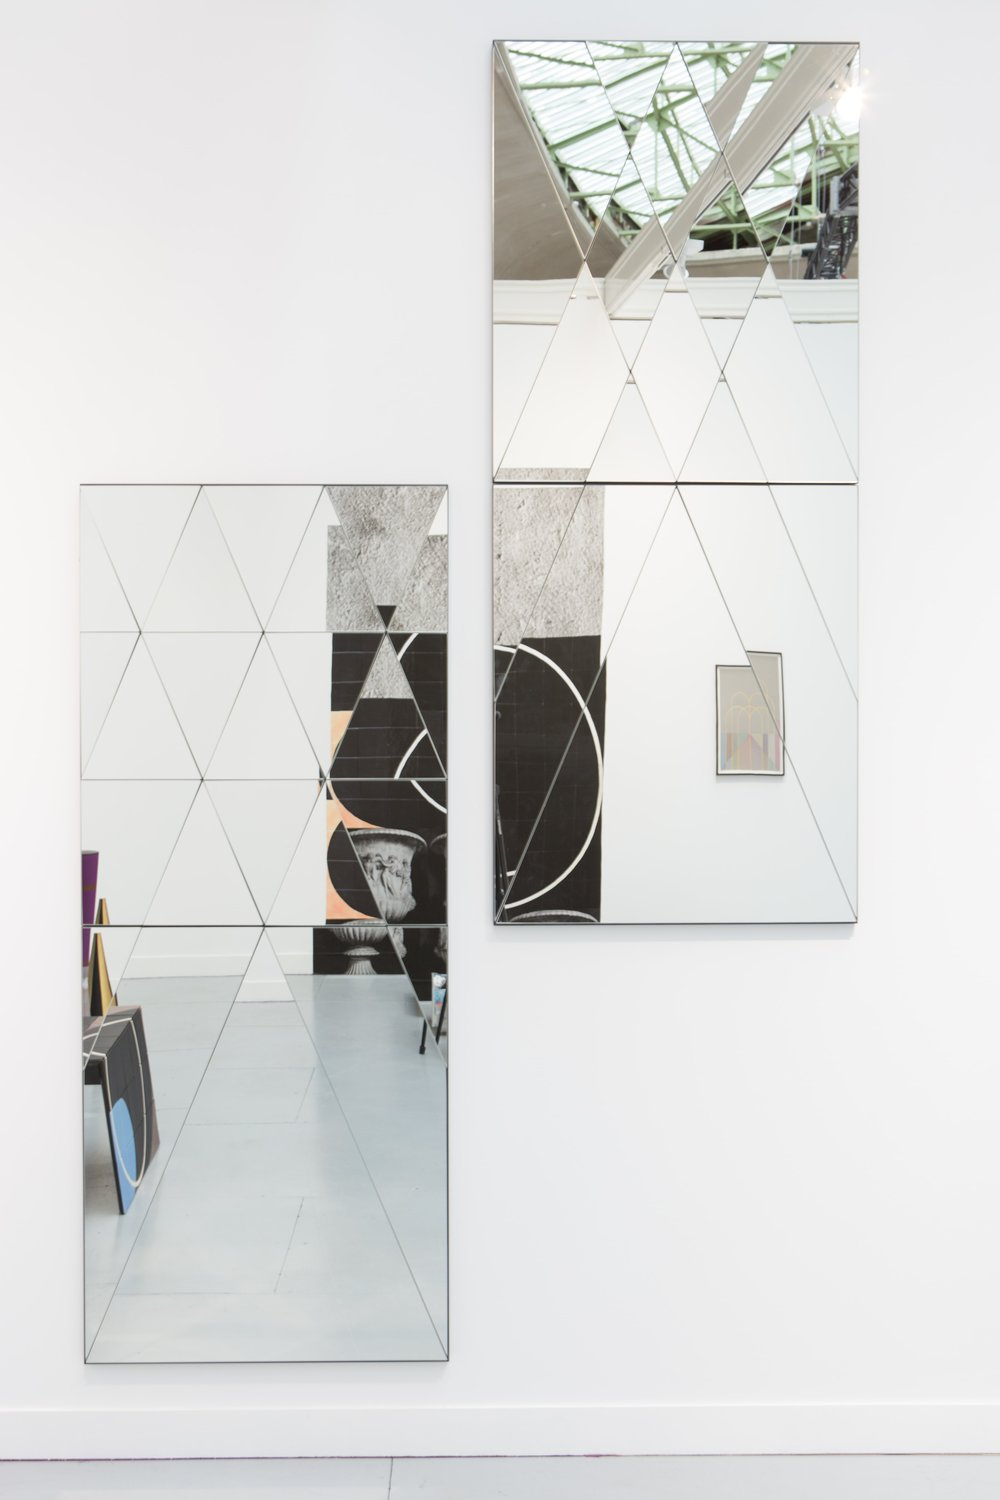 Claudia Wieser, 2015,  untitled (mirror),   mirror, 182 cm x 76 cm x 3 cm, edition 1+2